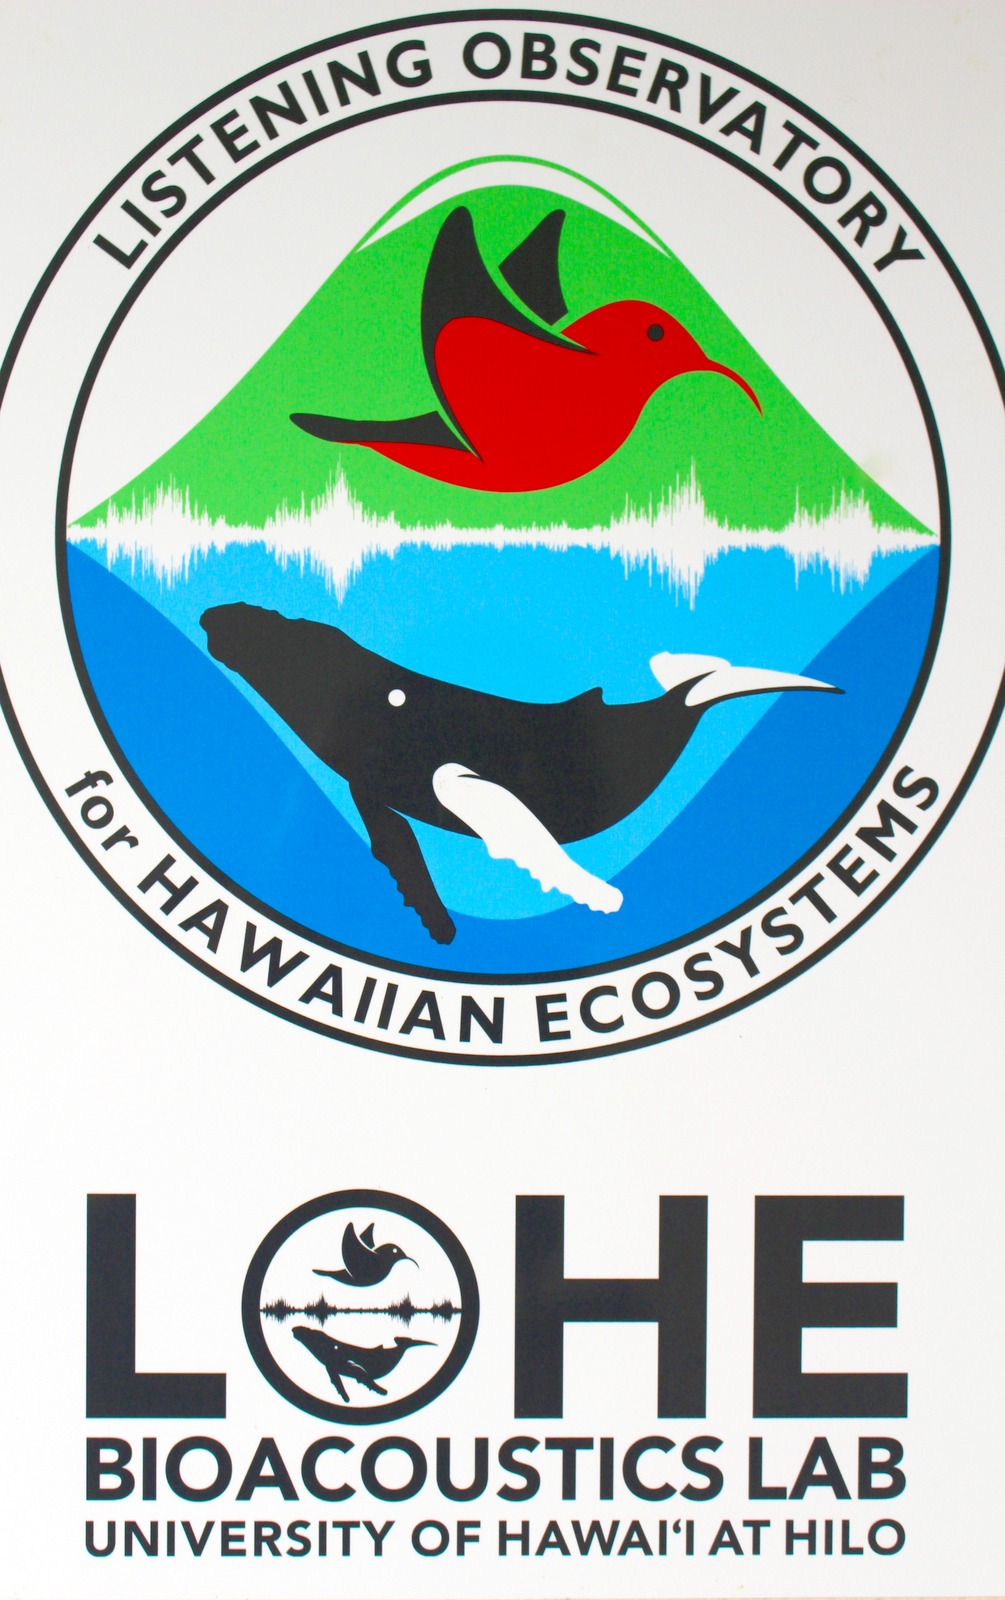 LOHO logo, with bird flying above, whale below - a waveform between them